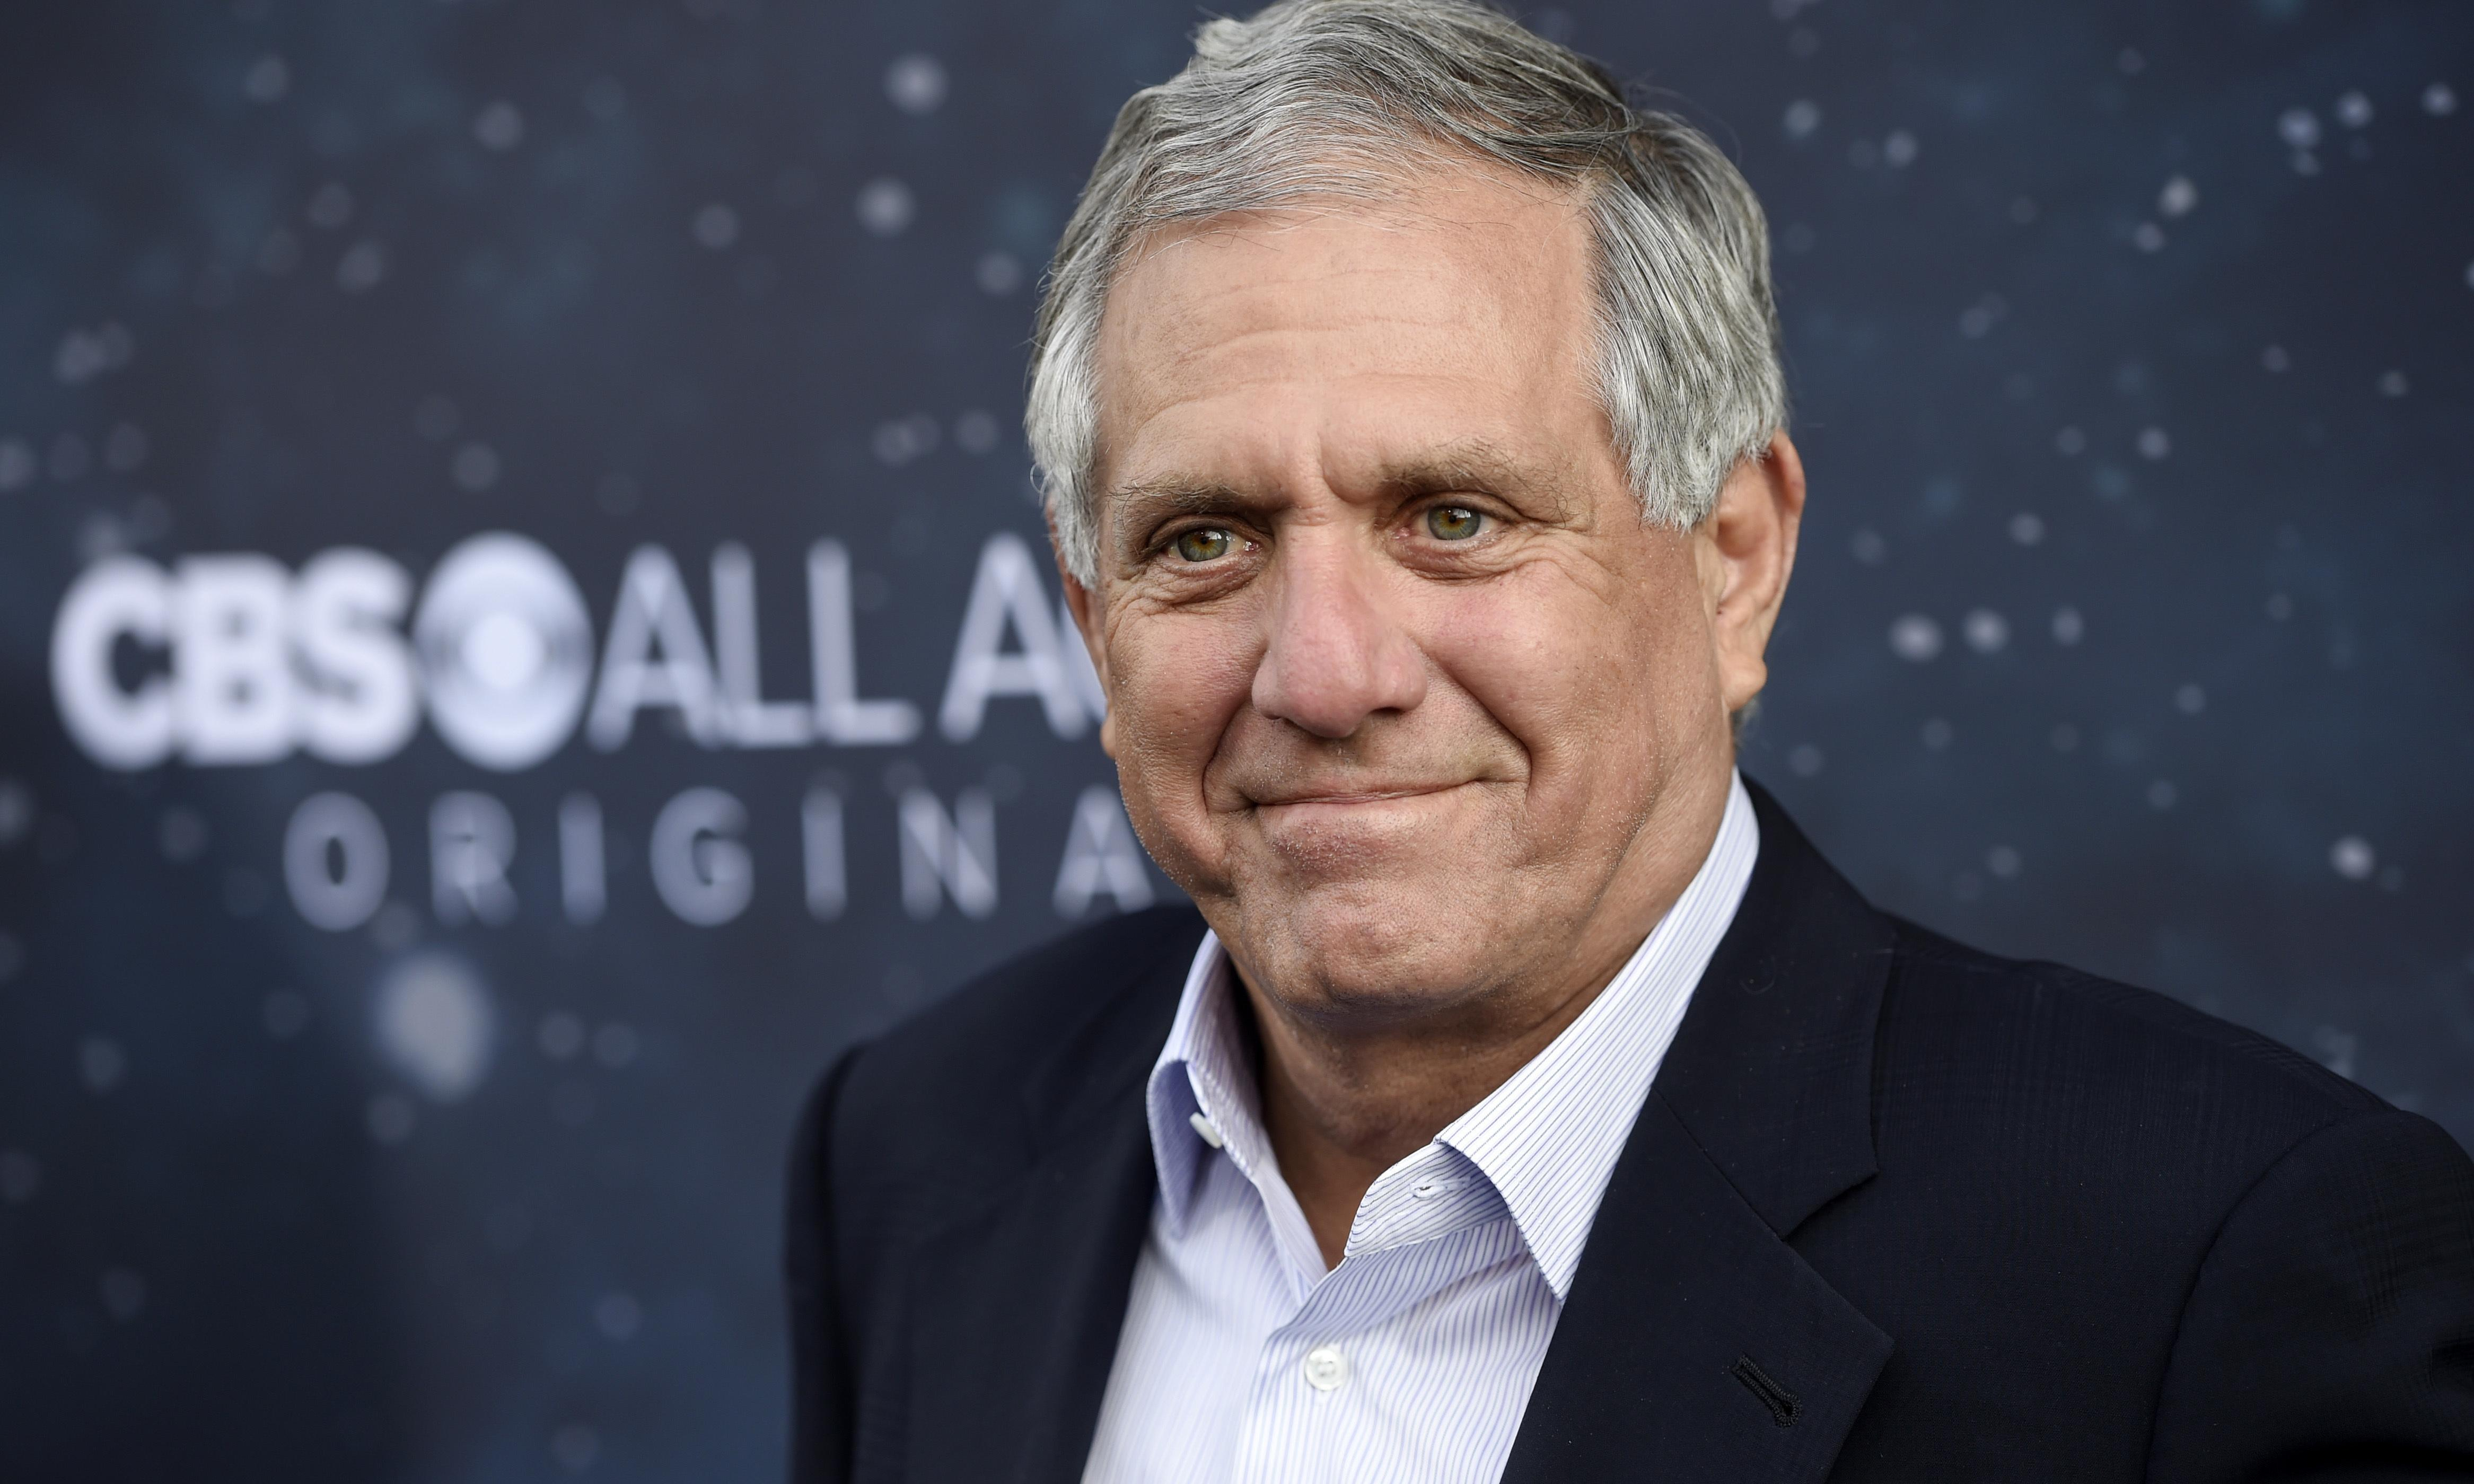 Les Moonves destroyed evidence in sexual misconduct investigation – report